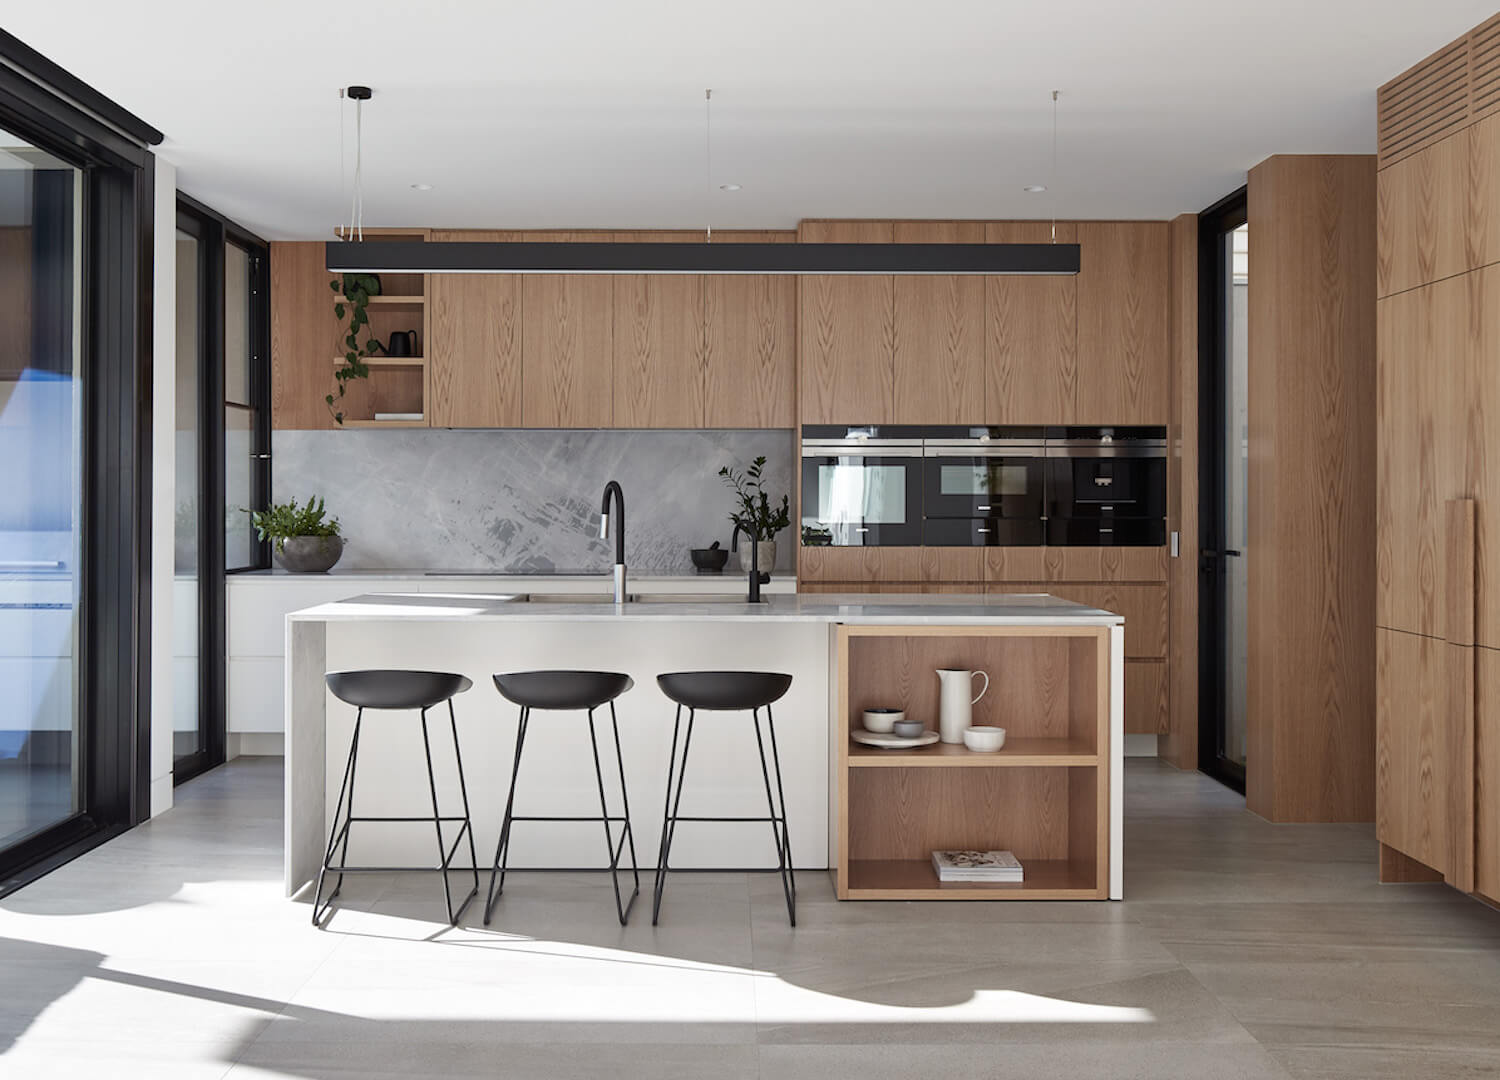 est living bloomfield house australian interiors figr architects 2